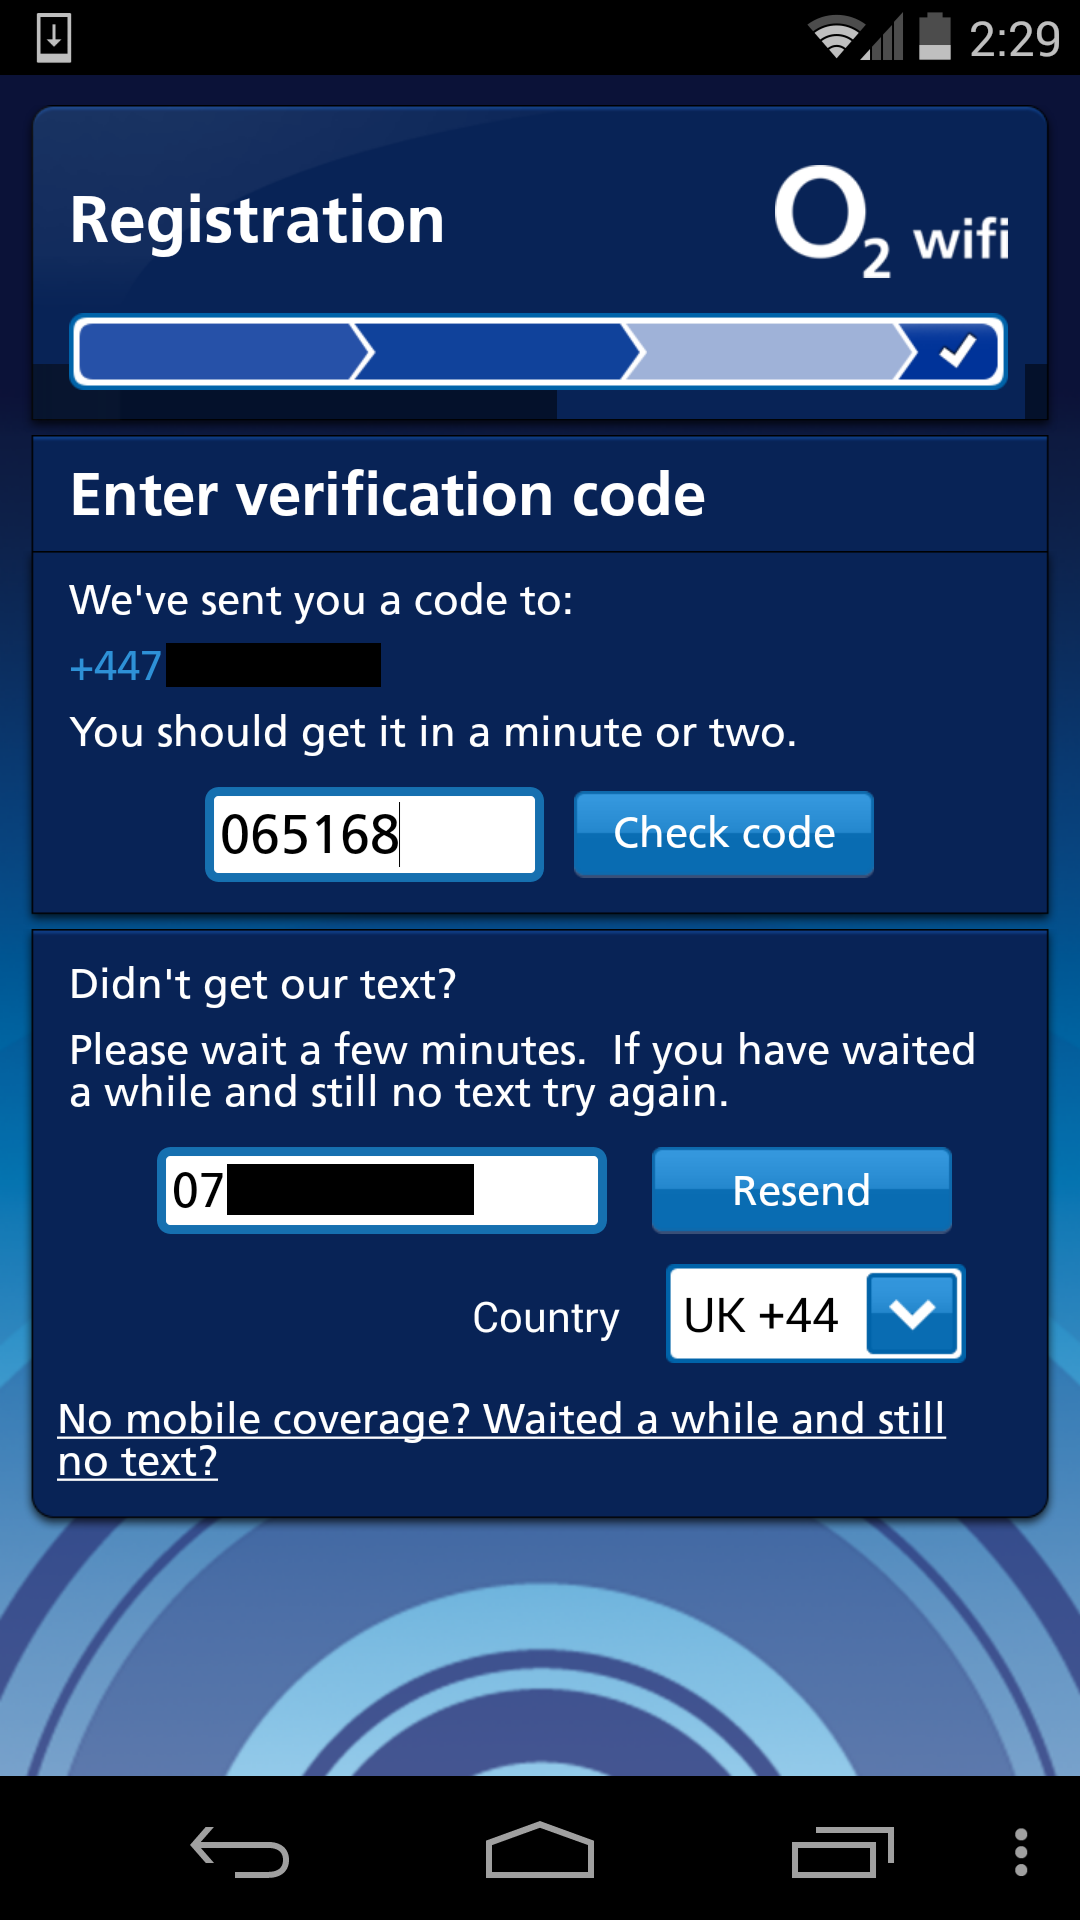 O2 Wifi app sends authentication and personal data over